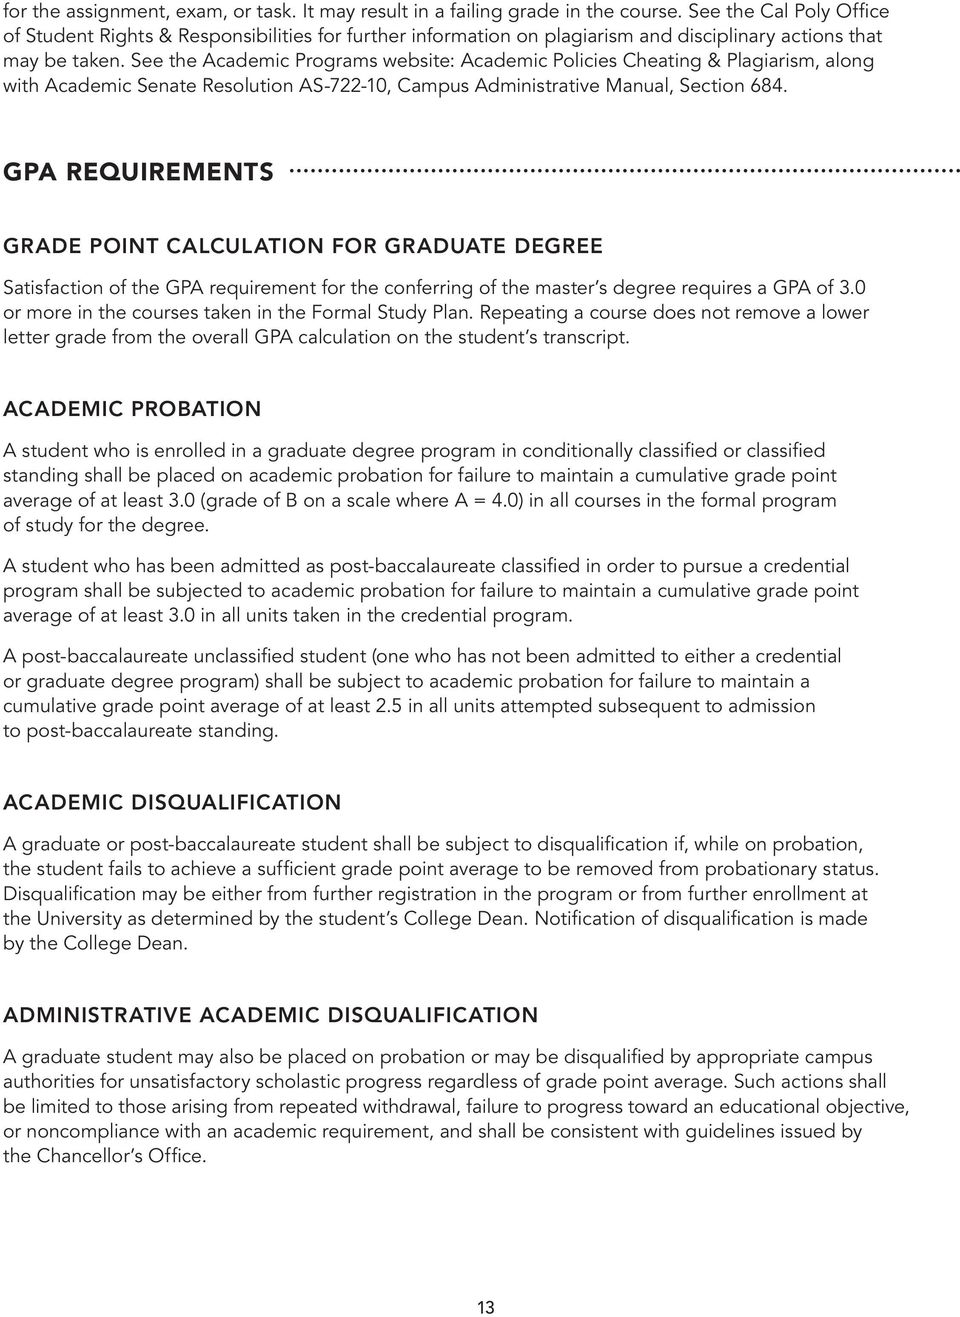 See the Academic Programs website: Academic Policies Cheating & Plagiarism, along with Academic Senate Resolution AS-722-10, Campus Administrative Manual, Section 684.